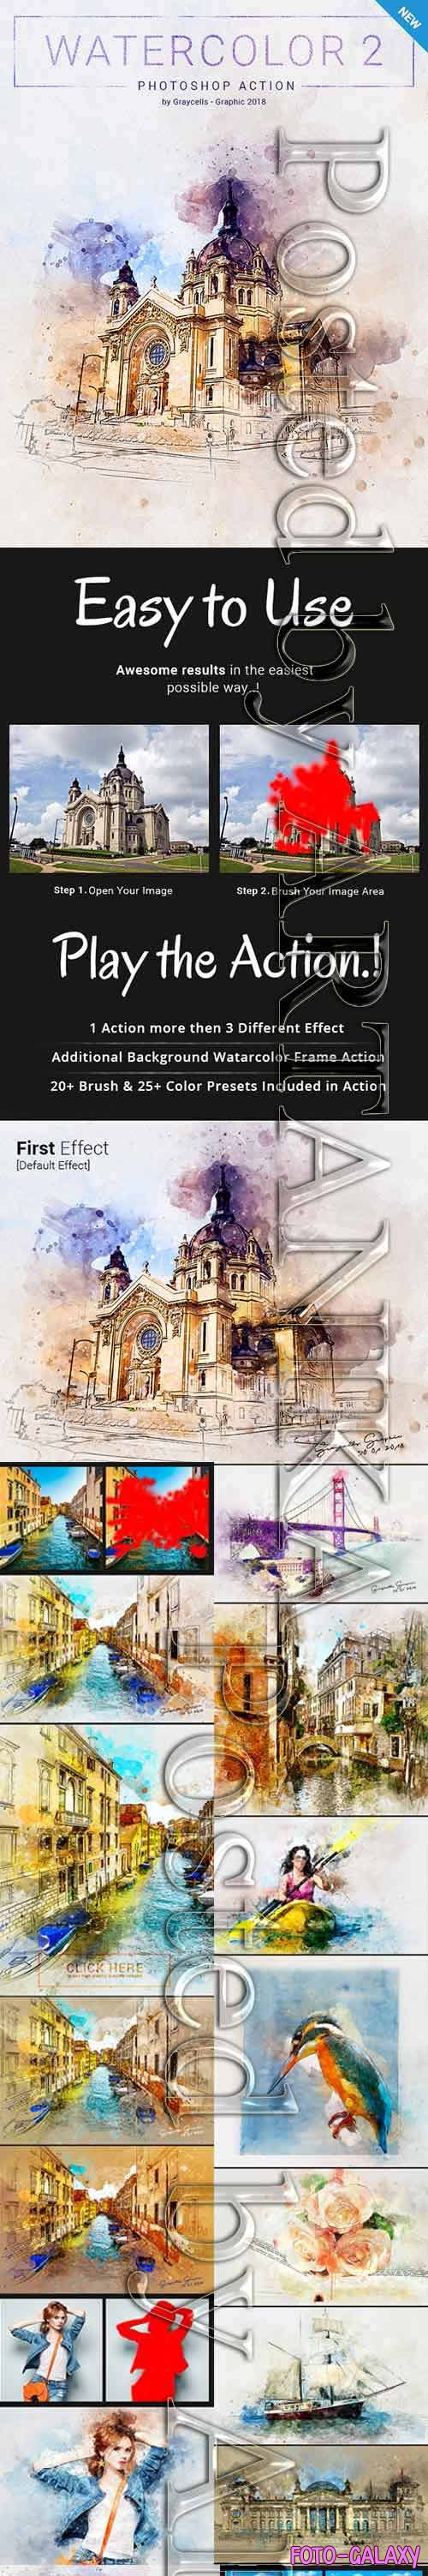 Graphicriver - Watercolor 2 Artist Photoshop Action 21313459